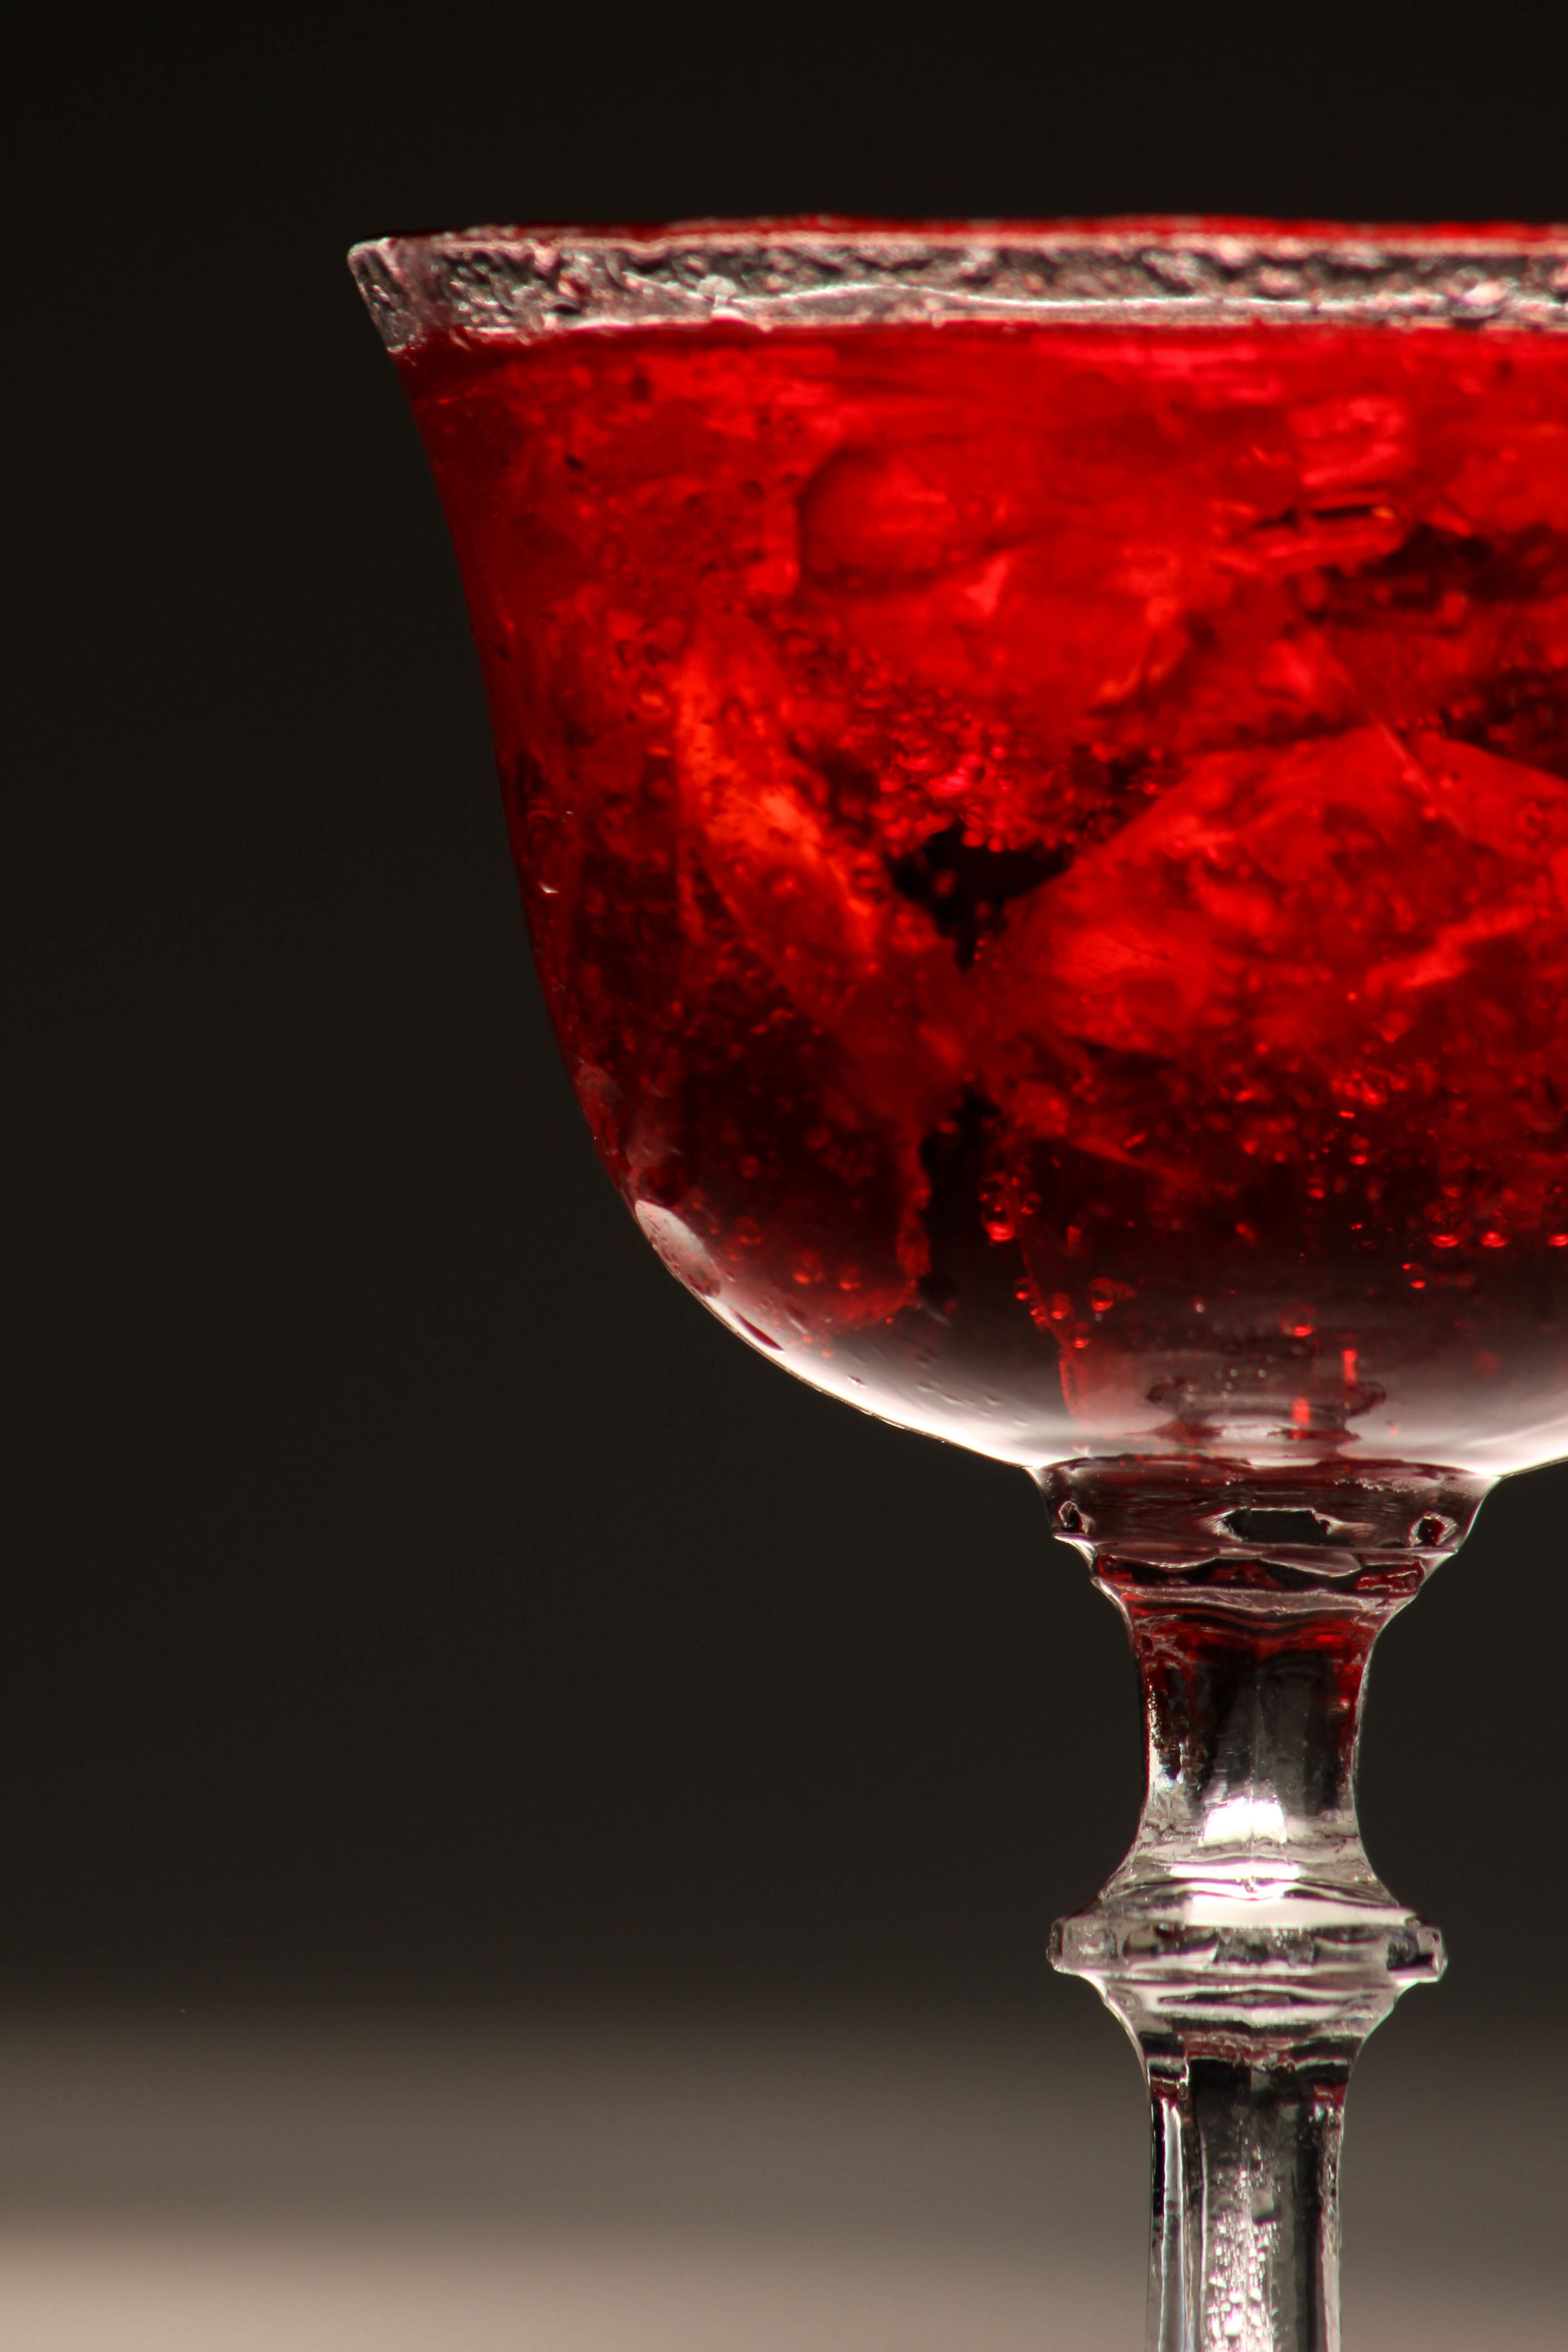 red, close-up, food and drink, refreshment, lighting equipment, studio shot, illuminated, black background, freshness, electric light, lit, no people